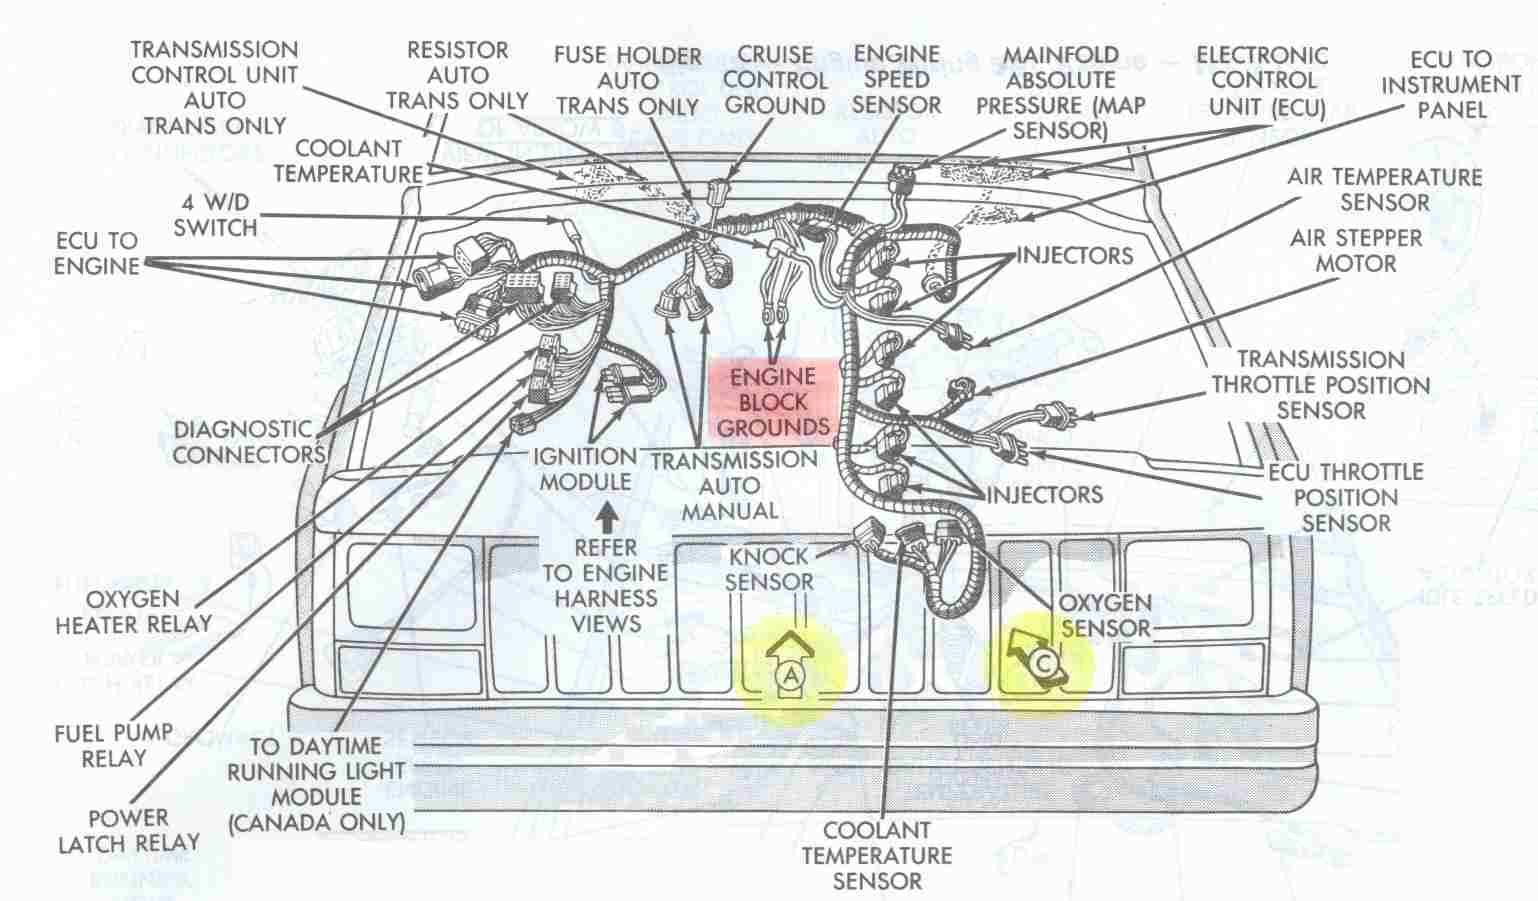 1989 Tpi Wiring Harness Not Lossing Diagram And Computer Painless Tbi Wiper Switch Aftermarket